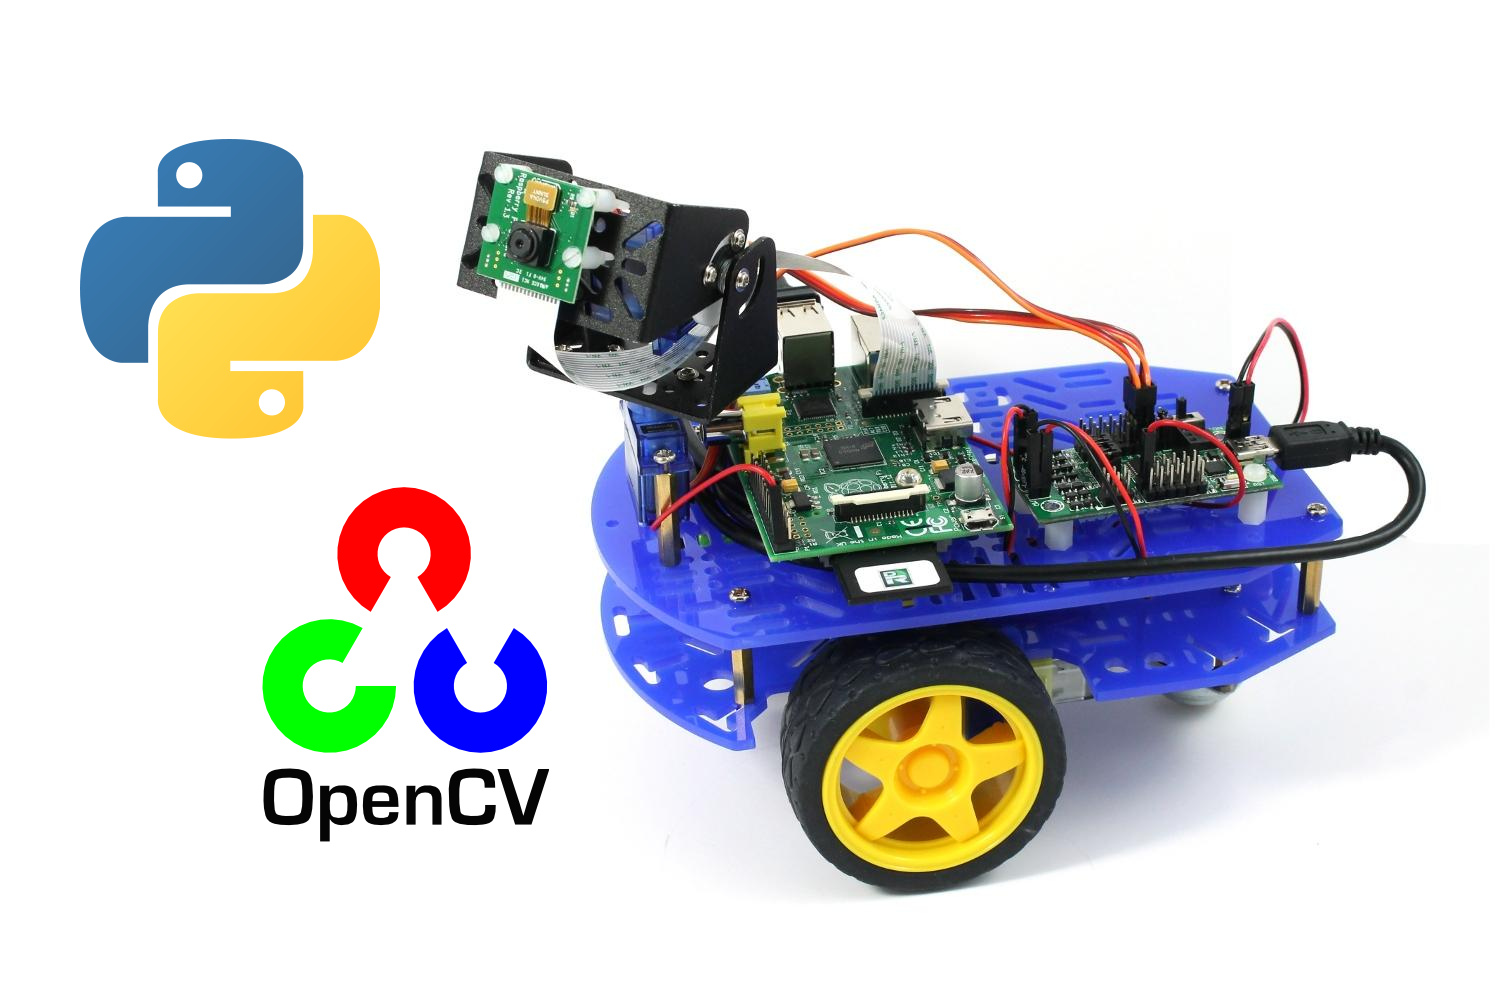 How to build Robots using ROS, OpenCV, Raspberry Pi and